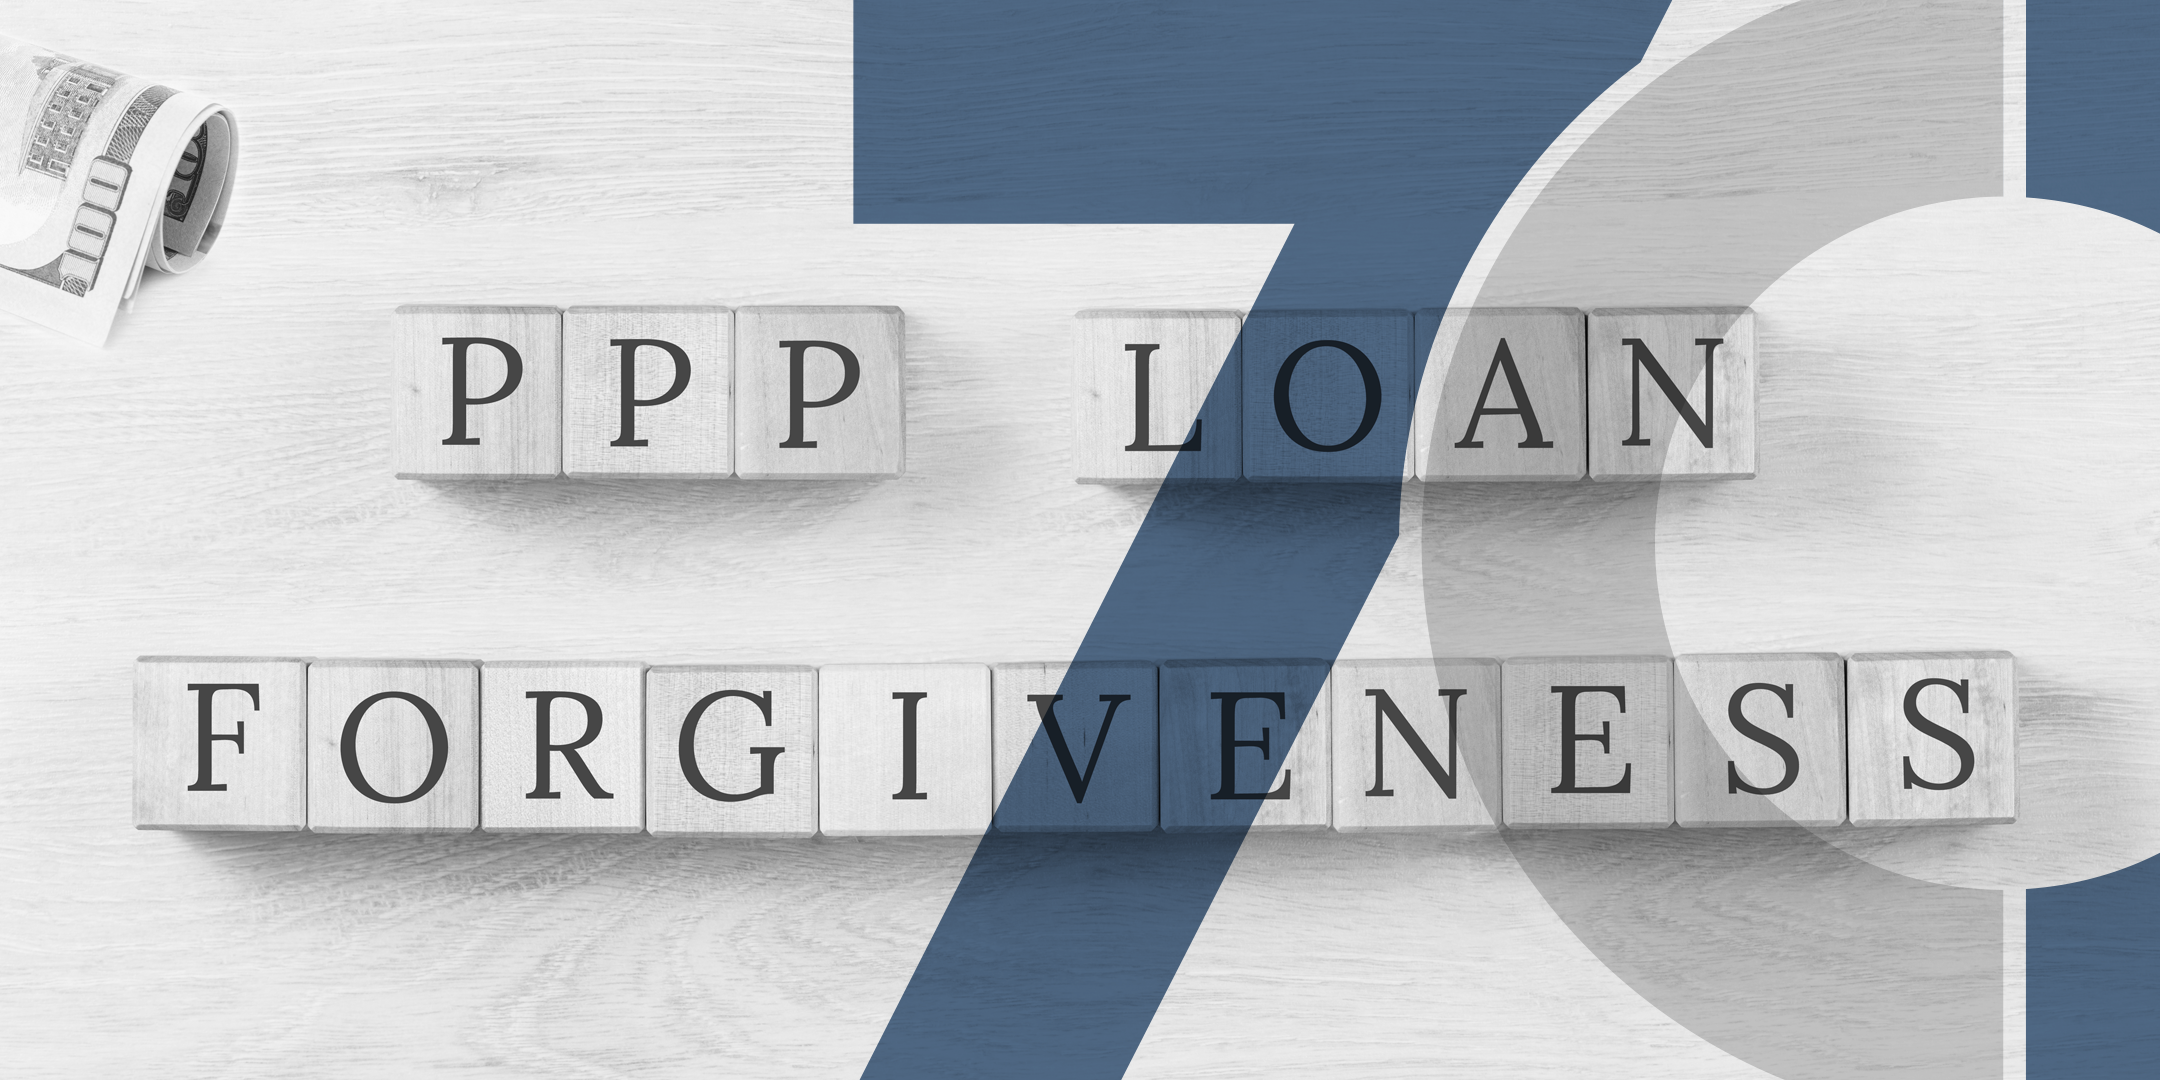 Small businesses have a new loan forgiveness option